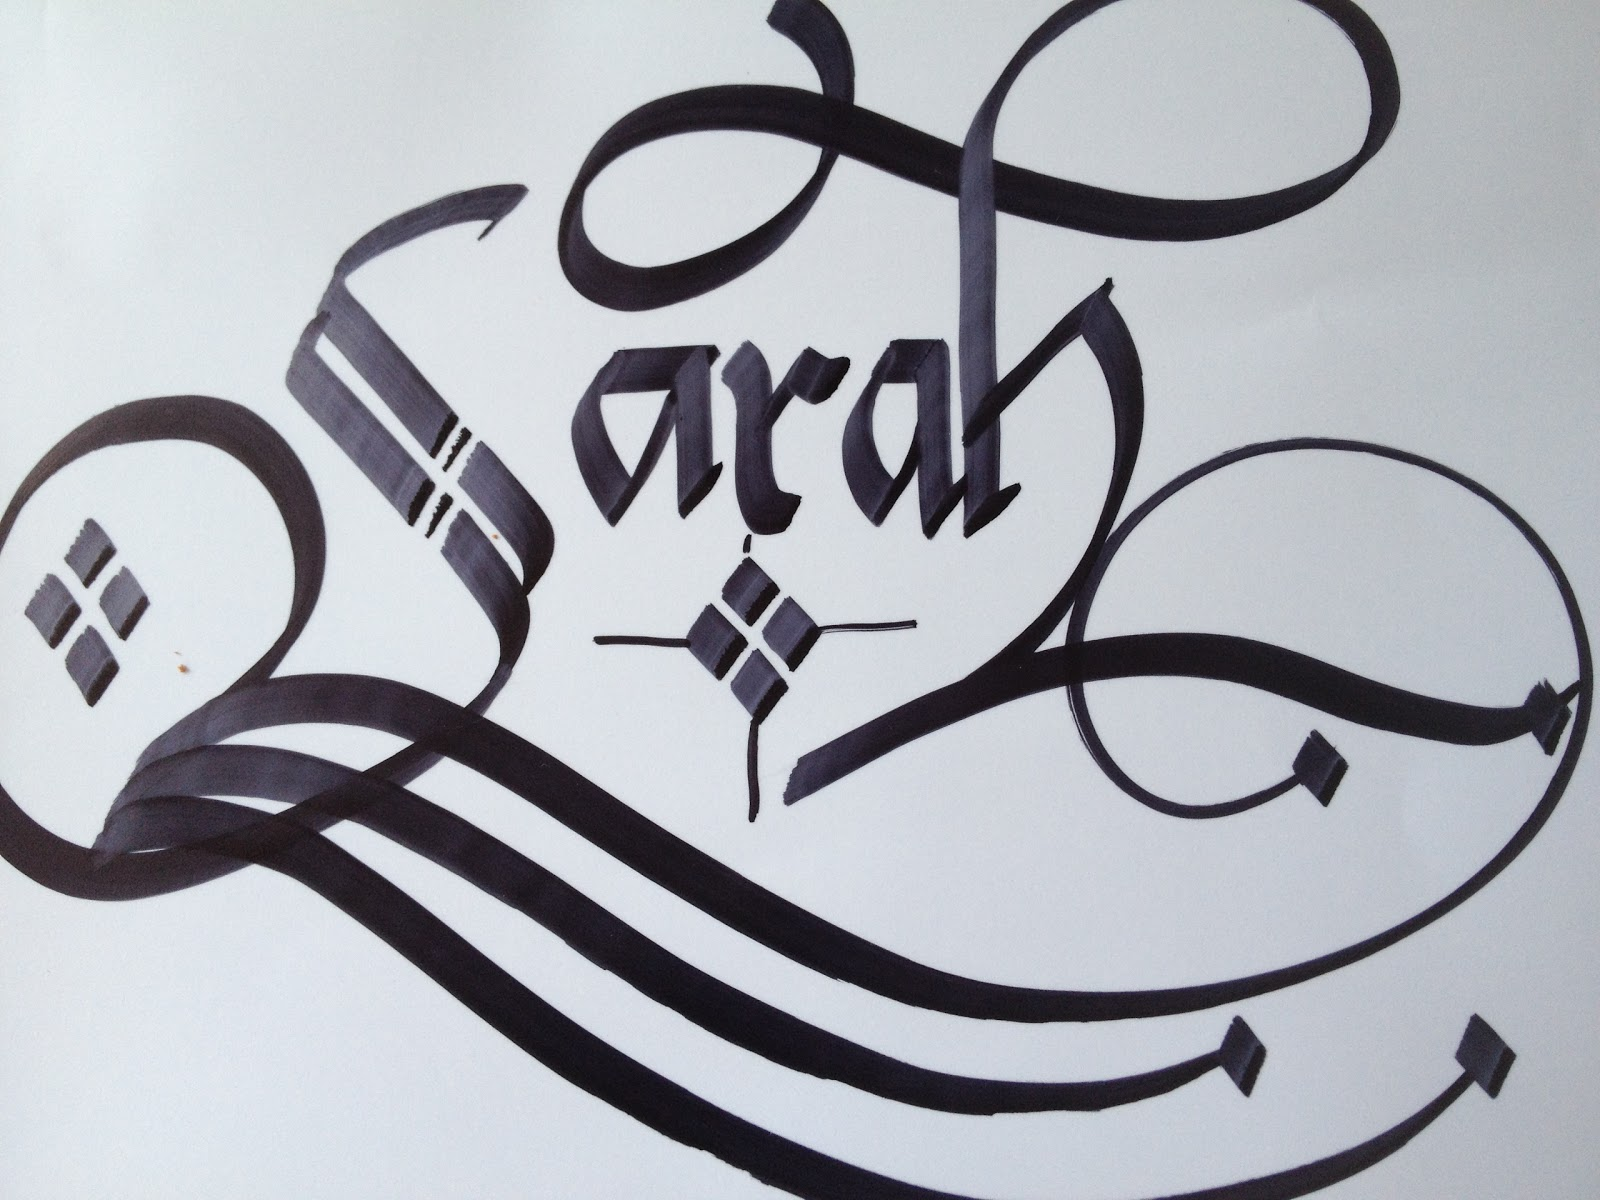 Calligraphy art girl names in michelle sarah